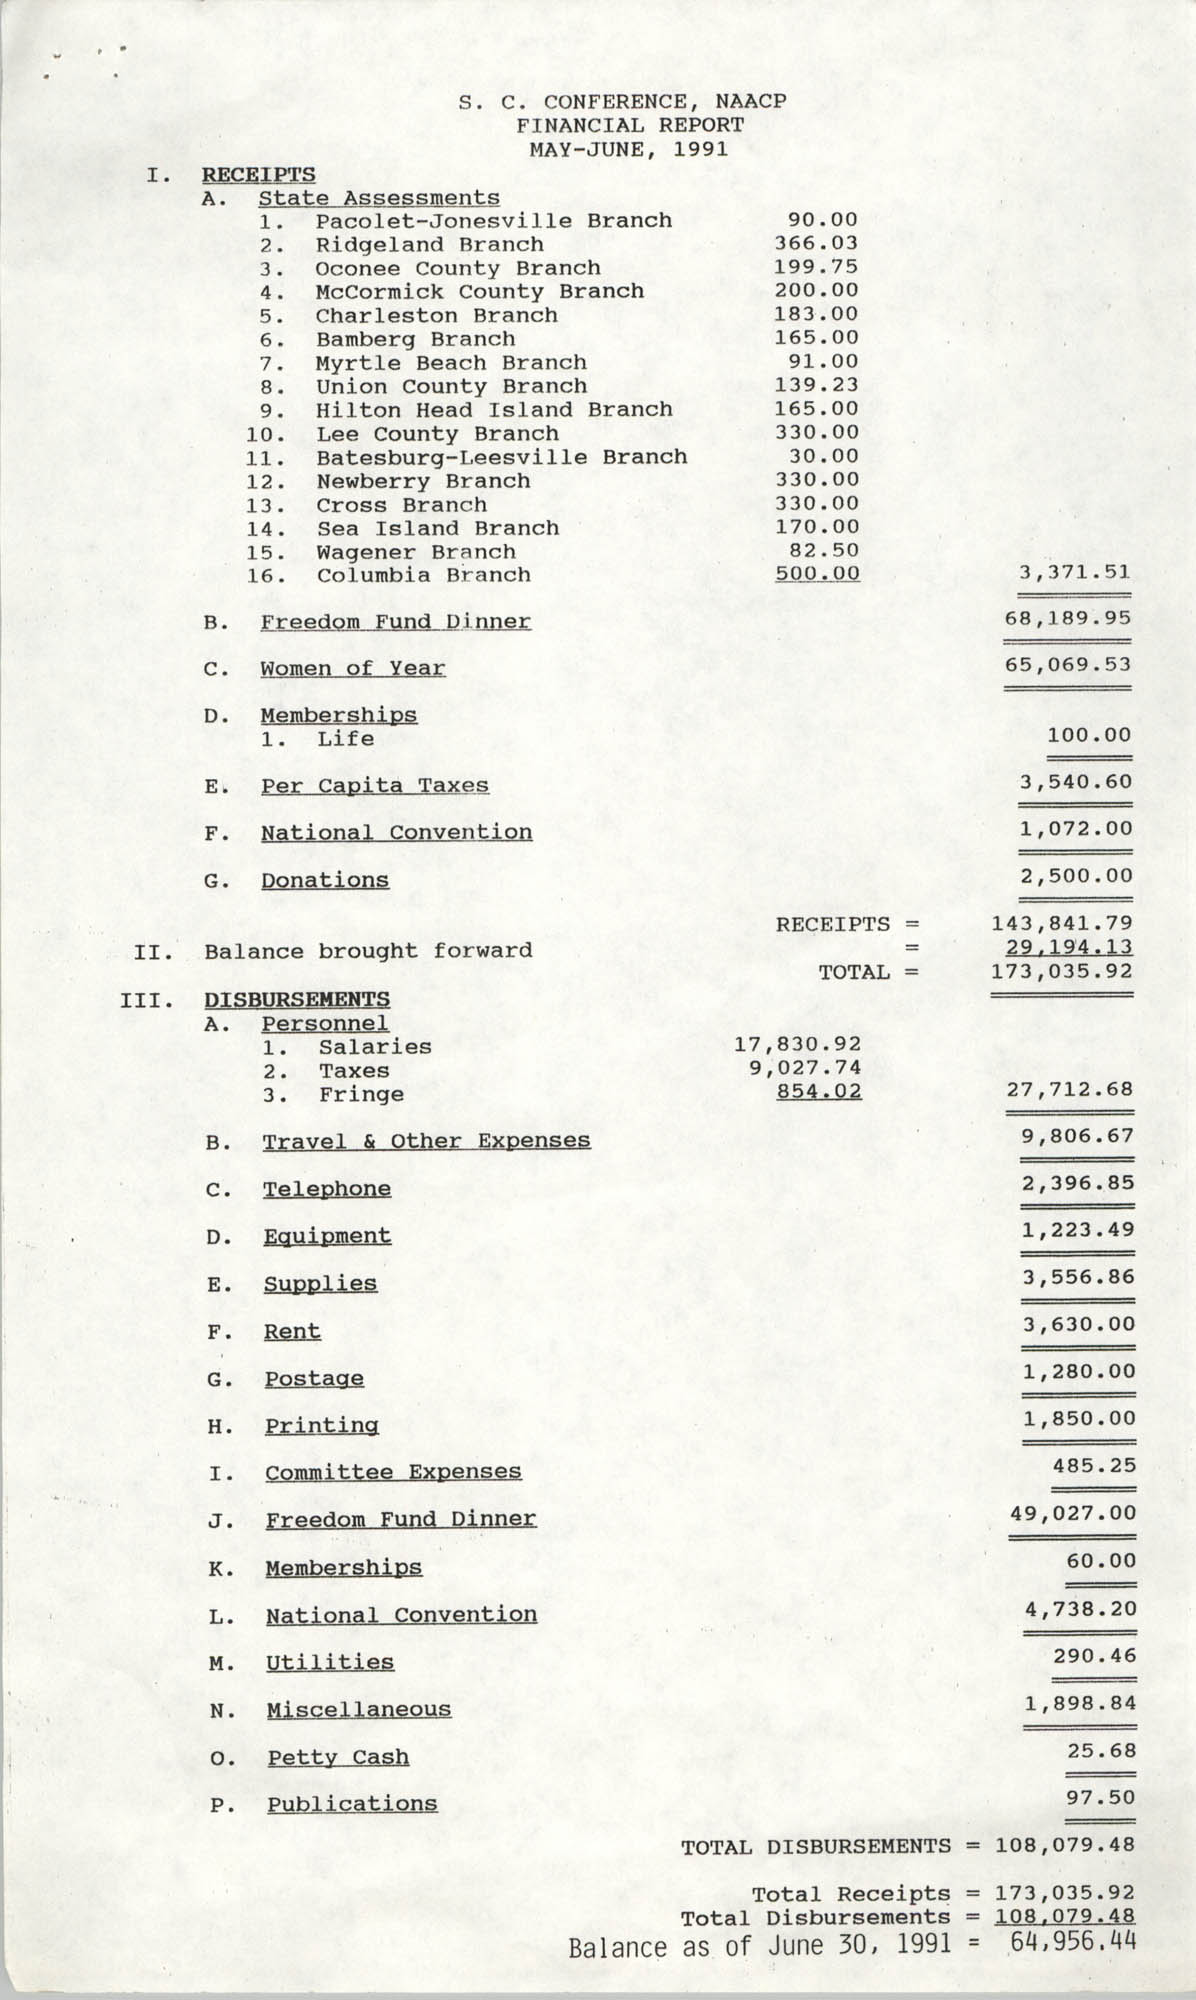 South Carolina Conference of Branches of the NAACP Financial Report, May to June, 1991